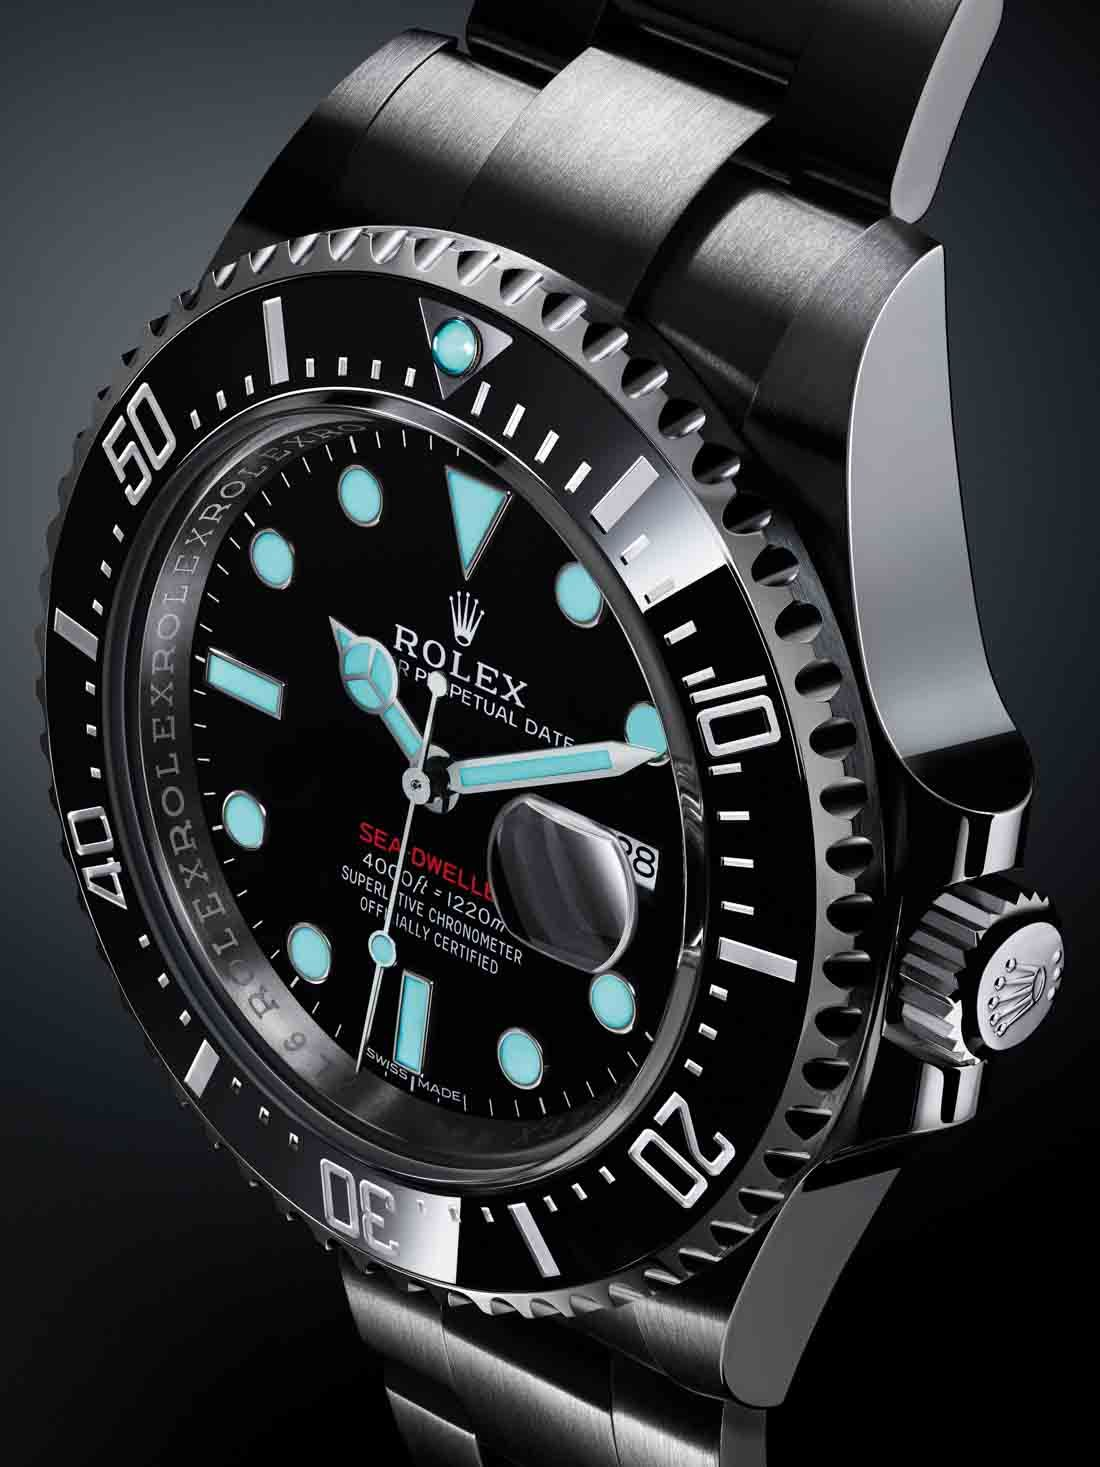 e22f39891d5f1 Rolex Sea-Dweller 126600 Watch Marks 50th Anniversary Of The Sea-Dweller  Hands-On